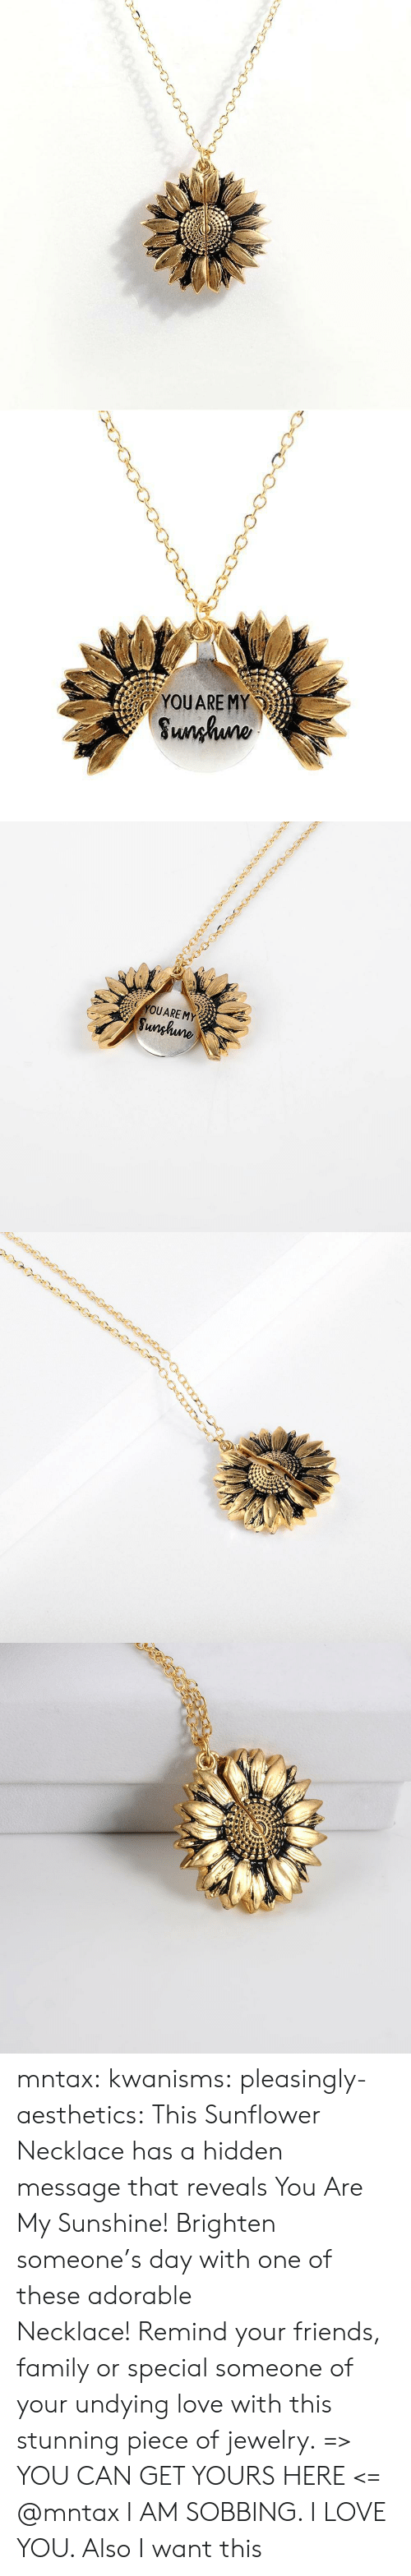 sobbing: YOUARE MY  Sunhuno   YOUARE MY  Sunghune mntax:  kwanisms:  pleasingly-aesthetics:  This Sunflower Necklace has a hidden message that reveals You Are My Sunshine! Brighten someone's day with one of these adorable Necklace! Remind your friends, family or special someone of your undying love with this stunning piece of jewelry. => YOU CAN GET YOURS HERE <=   @mntax   I AM SOBBING. I LOVE YOU. Also I want this